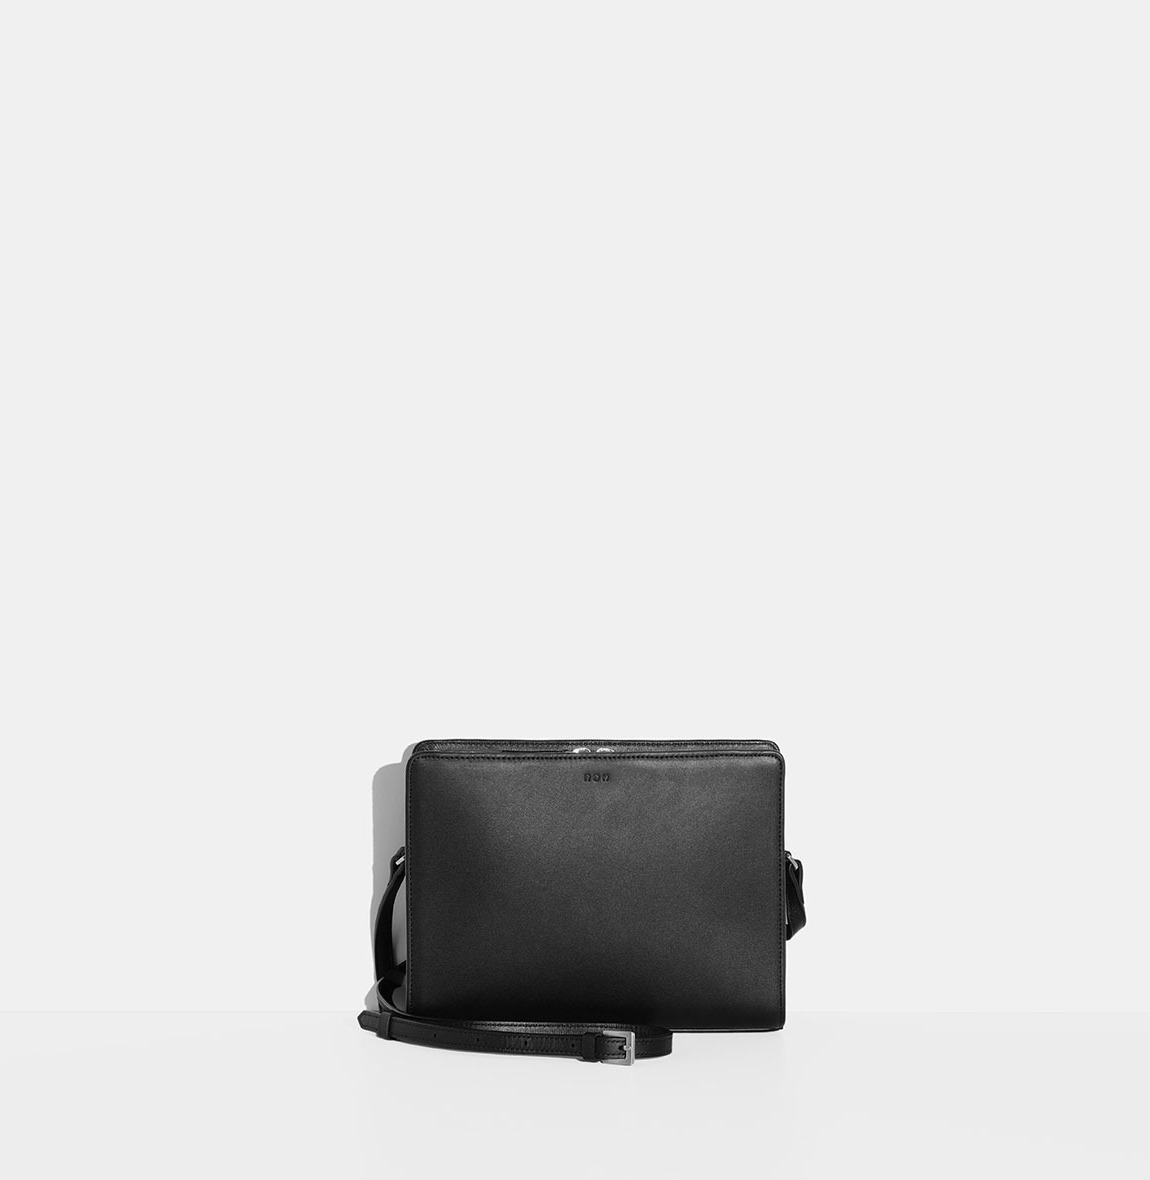 Squarebag Black